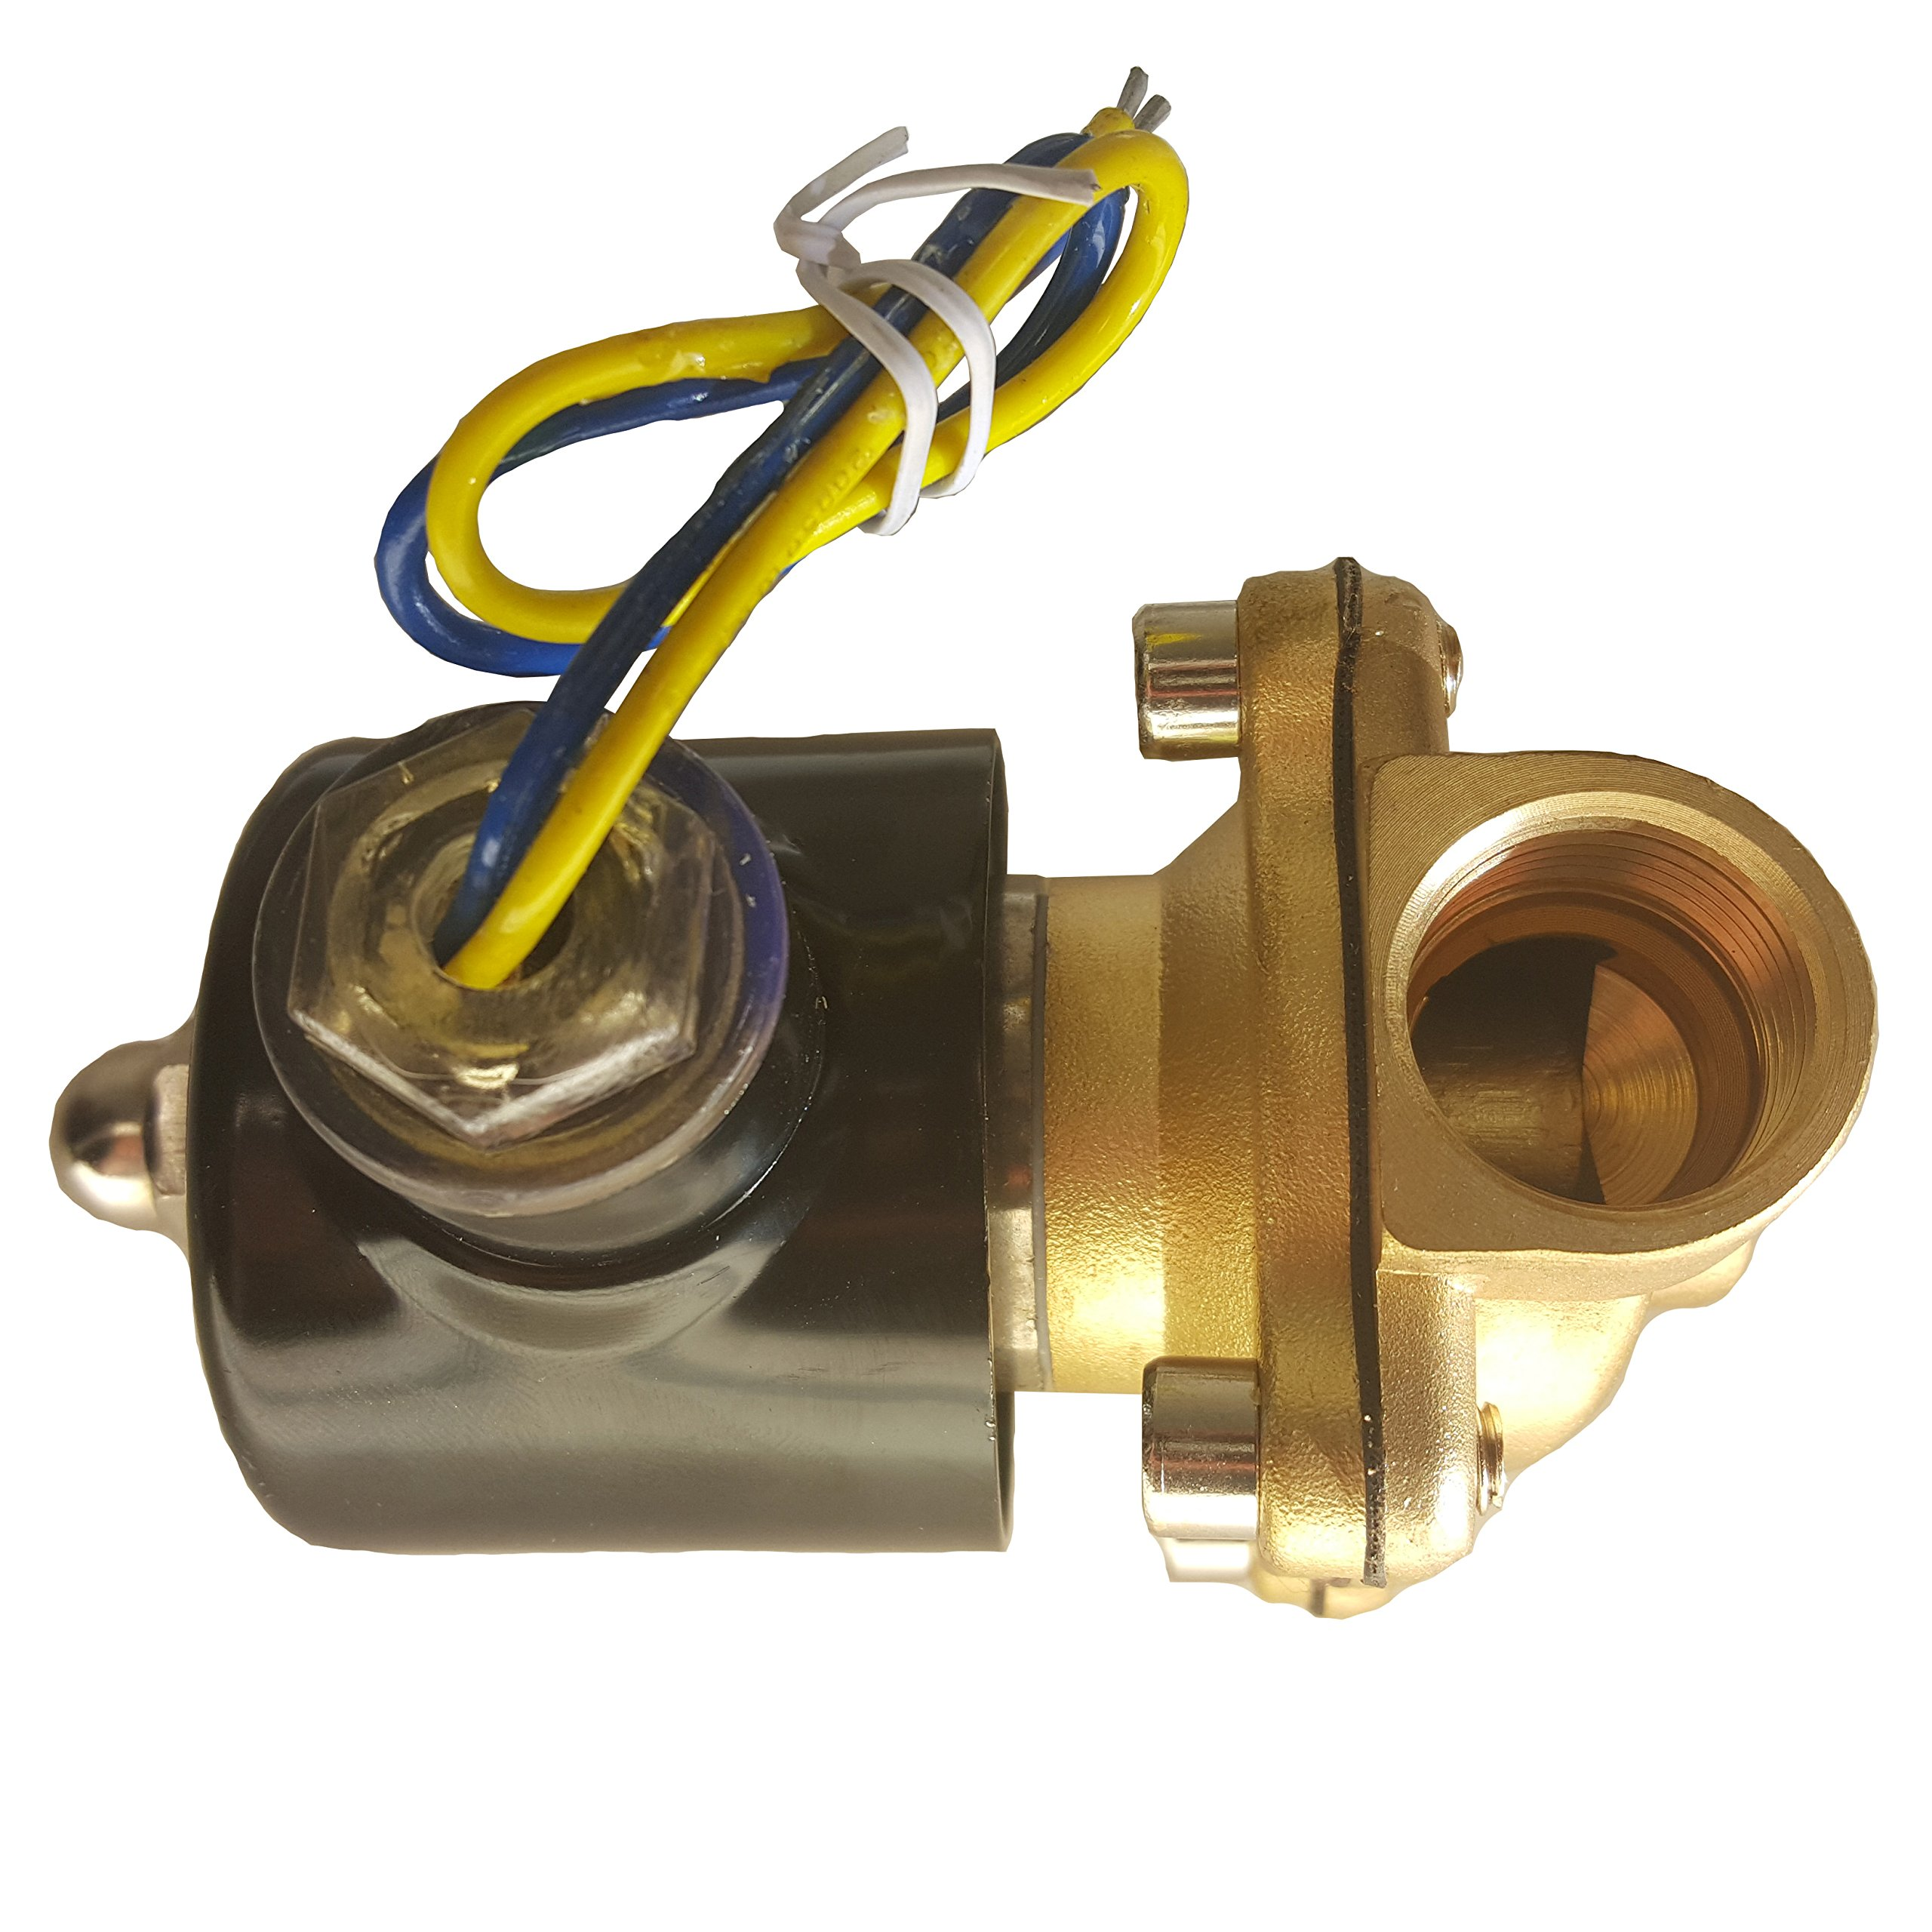 HFS 110v Ac or 12v Dc Electric Solenoid Valve Water Air Gas, Fuels N/c - 1/4'', 1/2'', 3/4'', 1'' NPT Available (12V DC 1/2'' NPT) by HFS (Image #4)